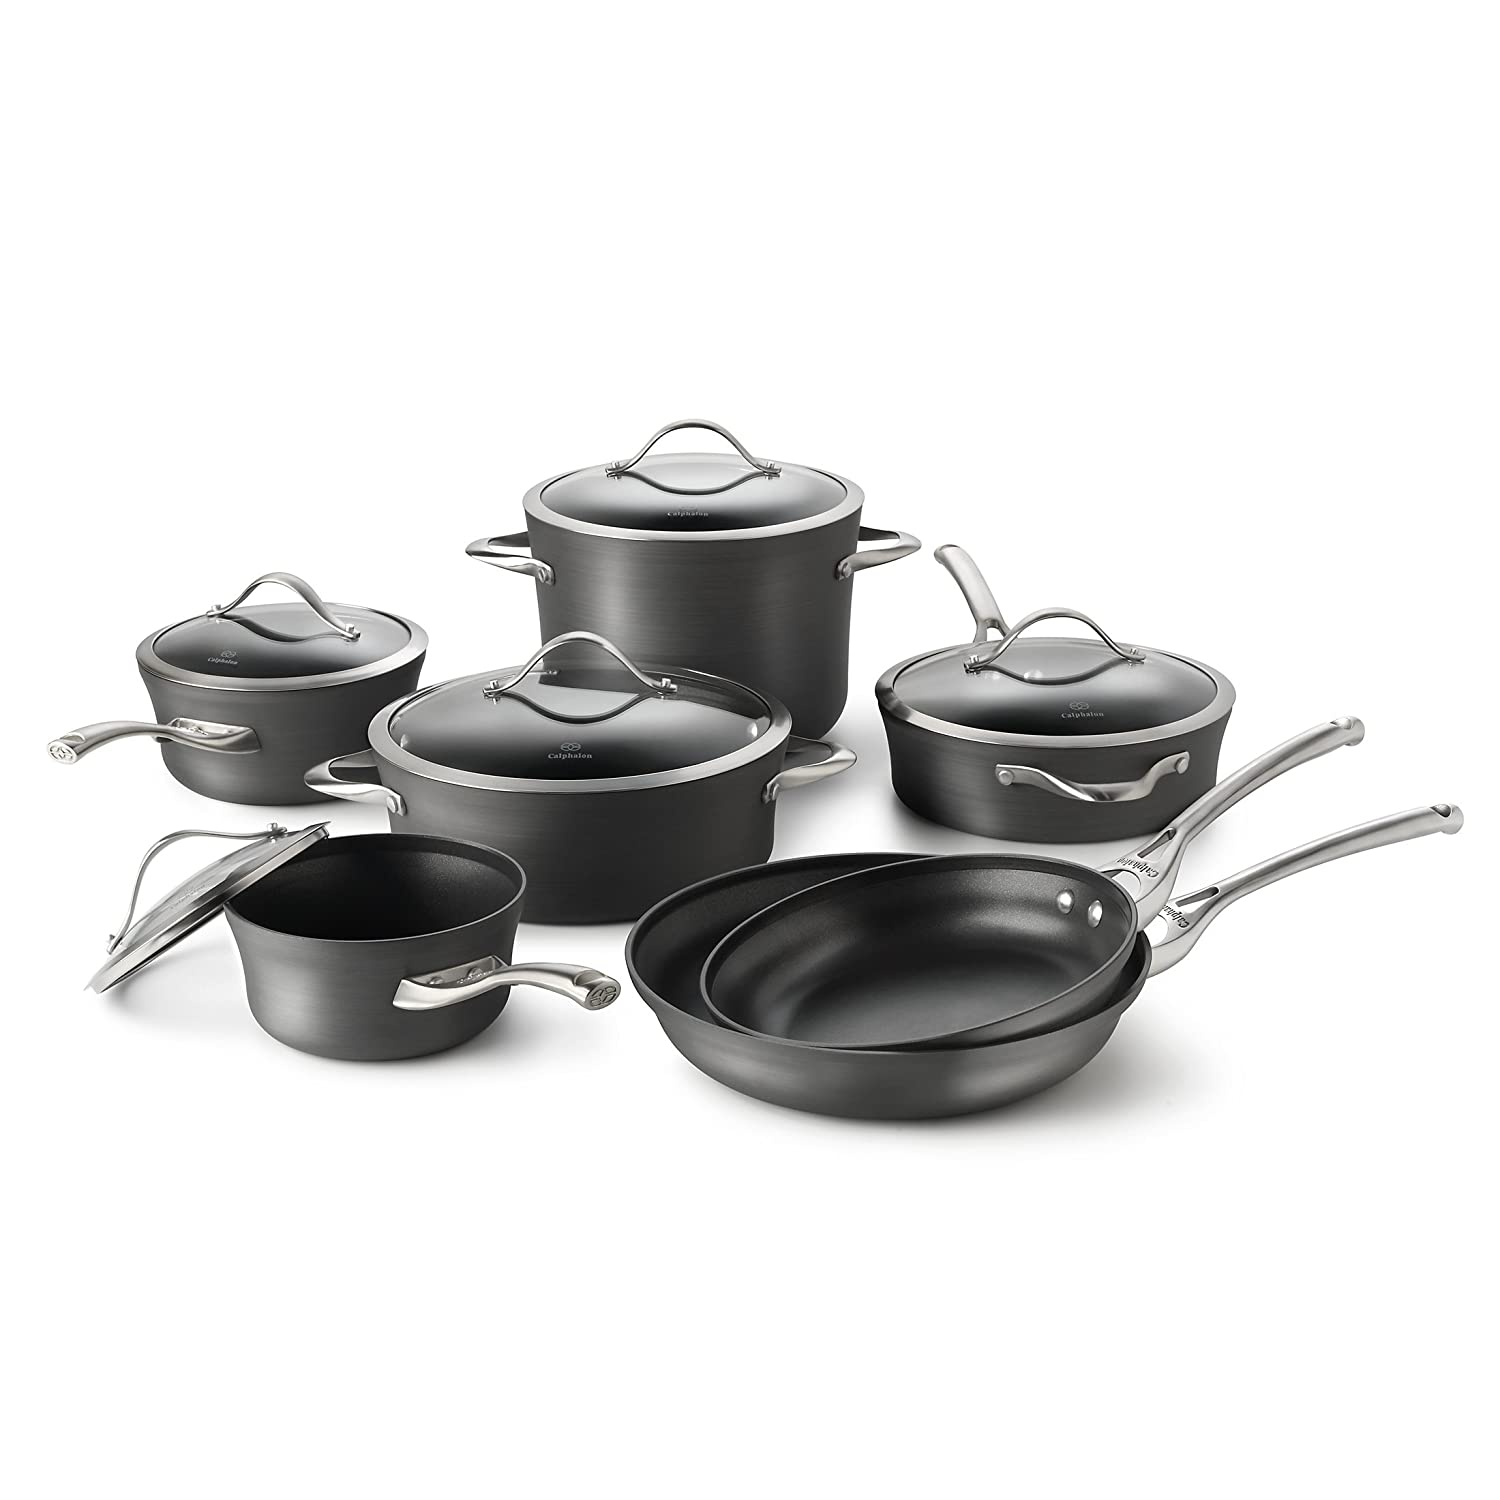 Calphalon Contemporary Hard-Anodized Aluminum Non Stick Cookware Set, 11-pc, Black Via Amazon